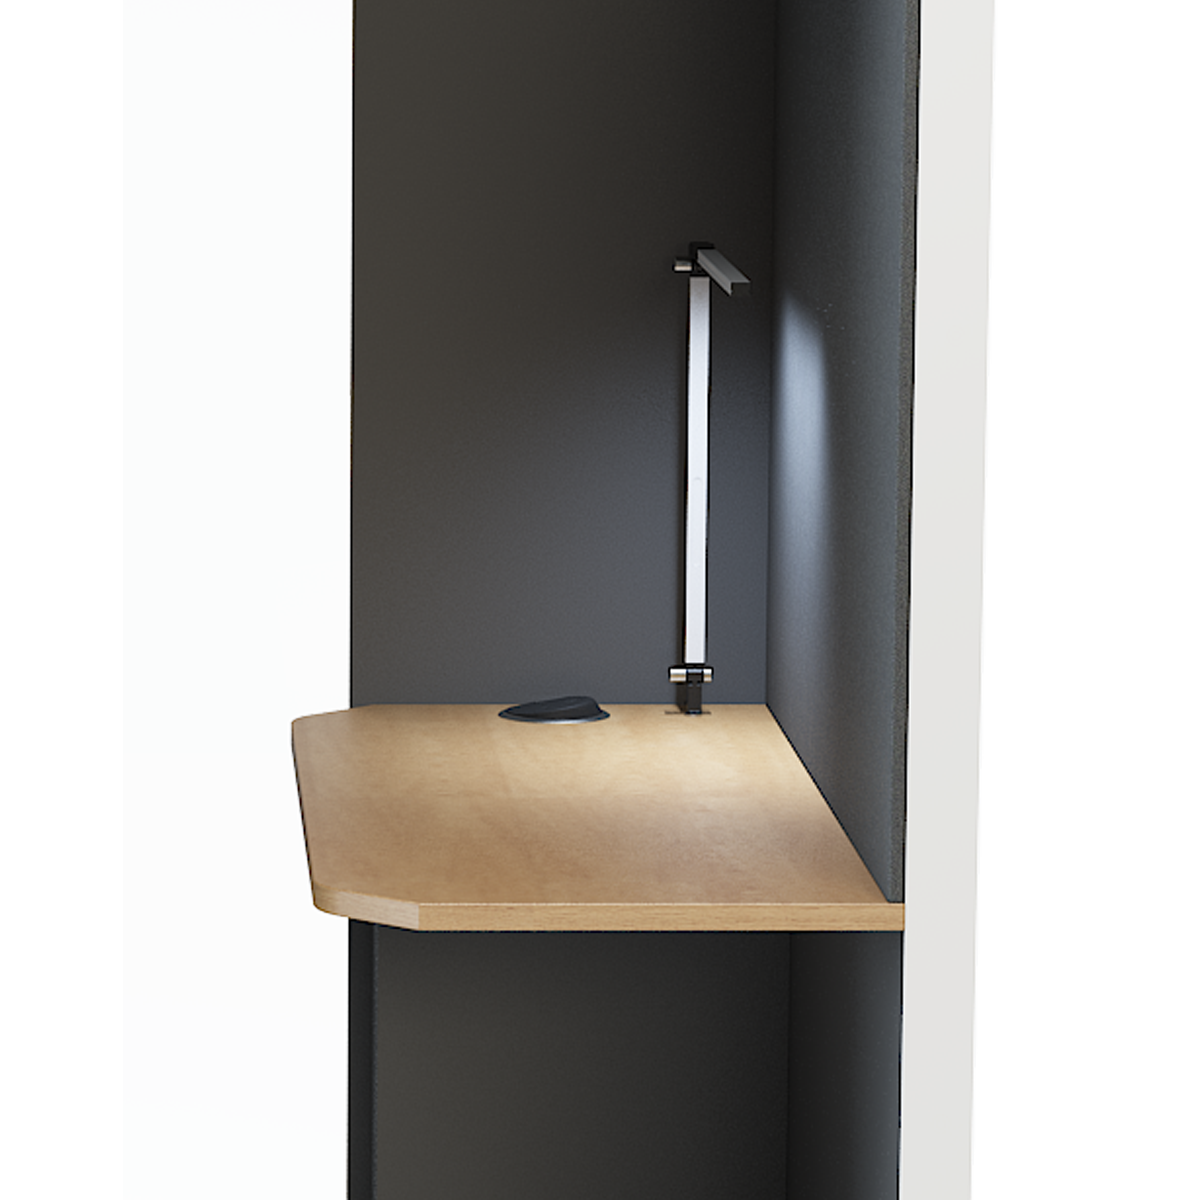 Shelf for devices with standard 4 power outlets